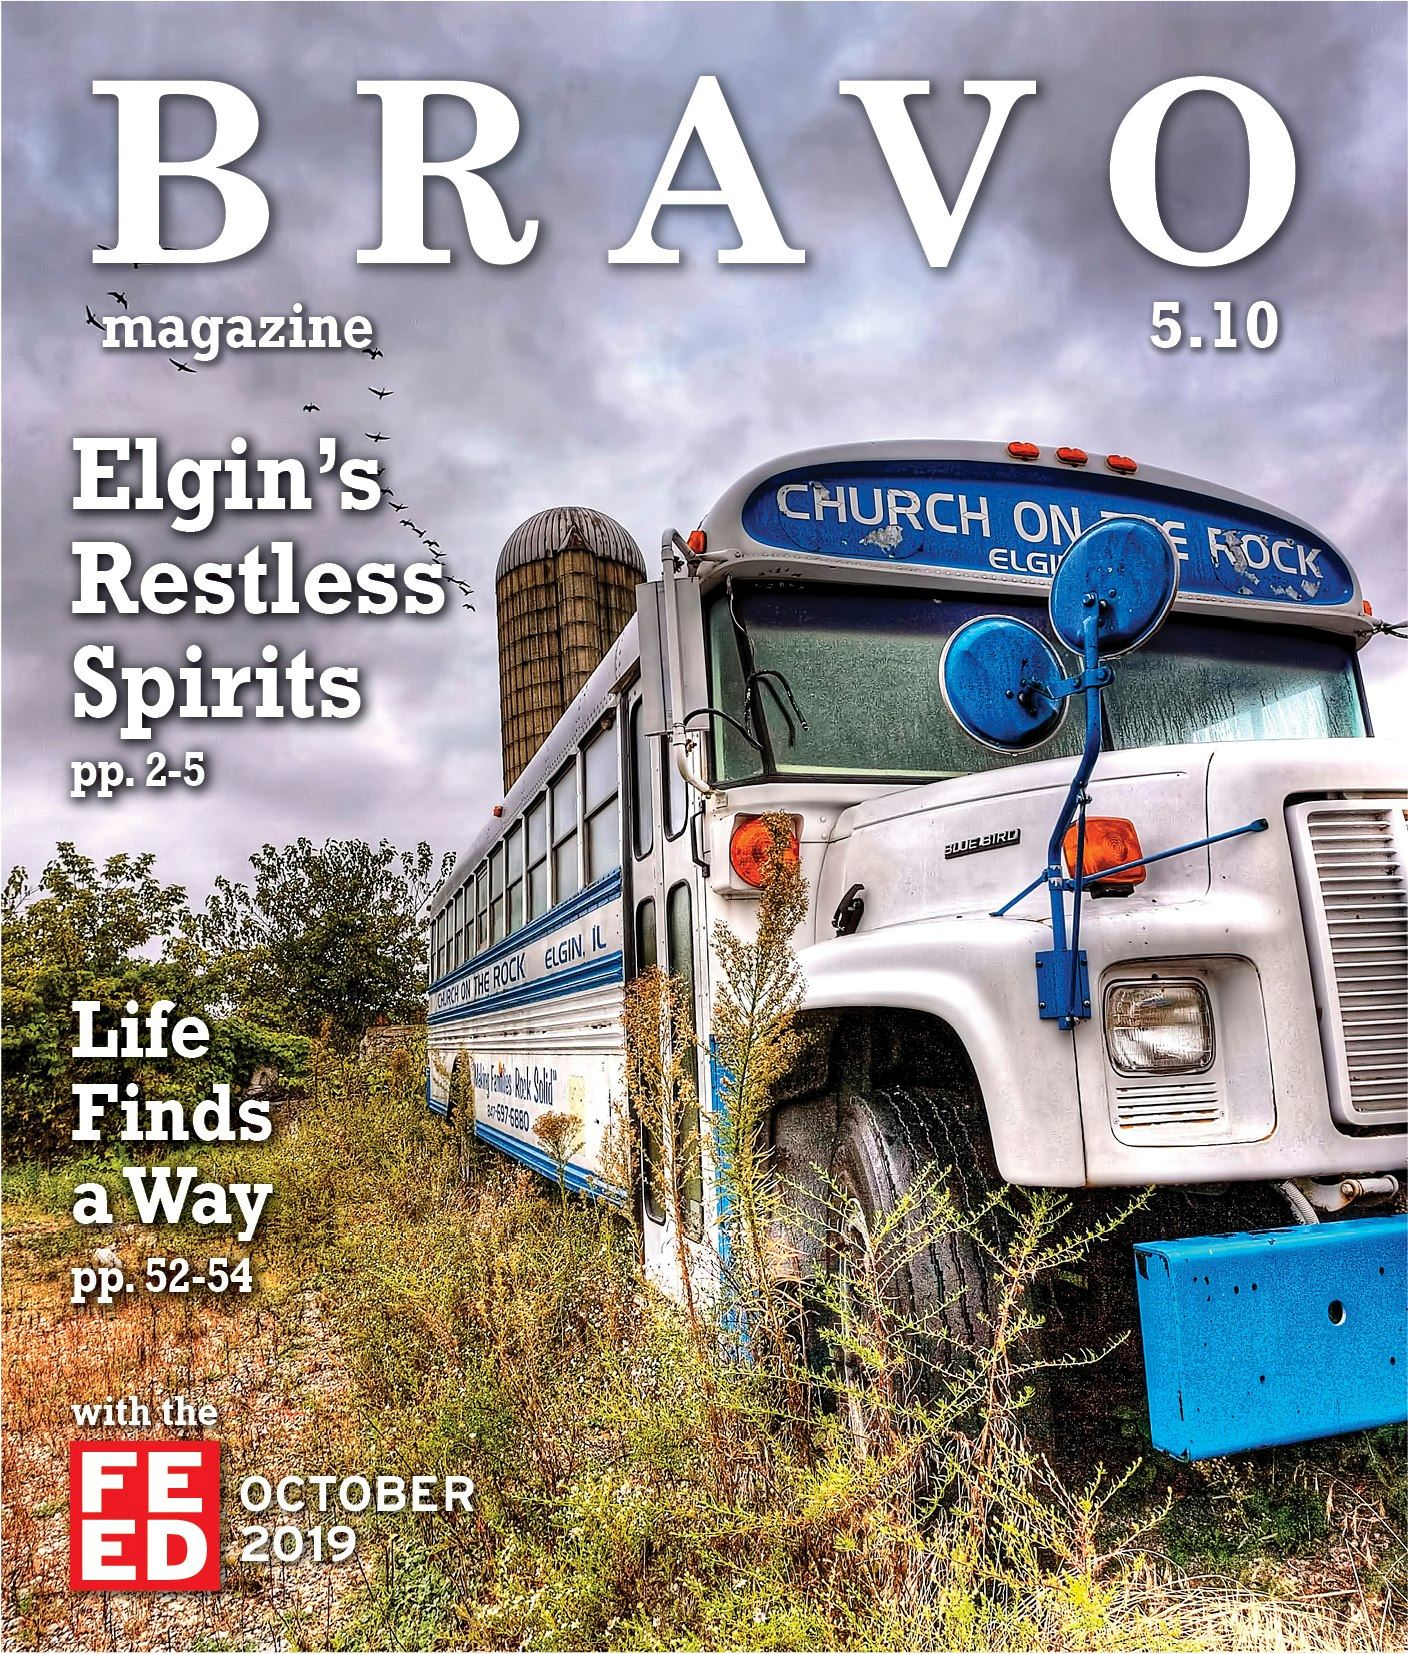 Bravo Magazine- October cover. Bus in a field